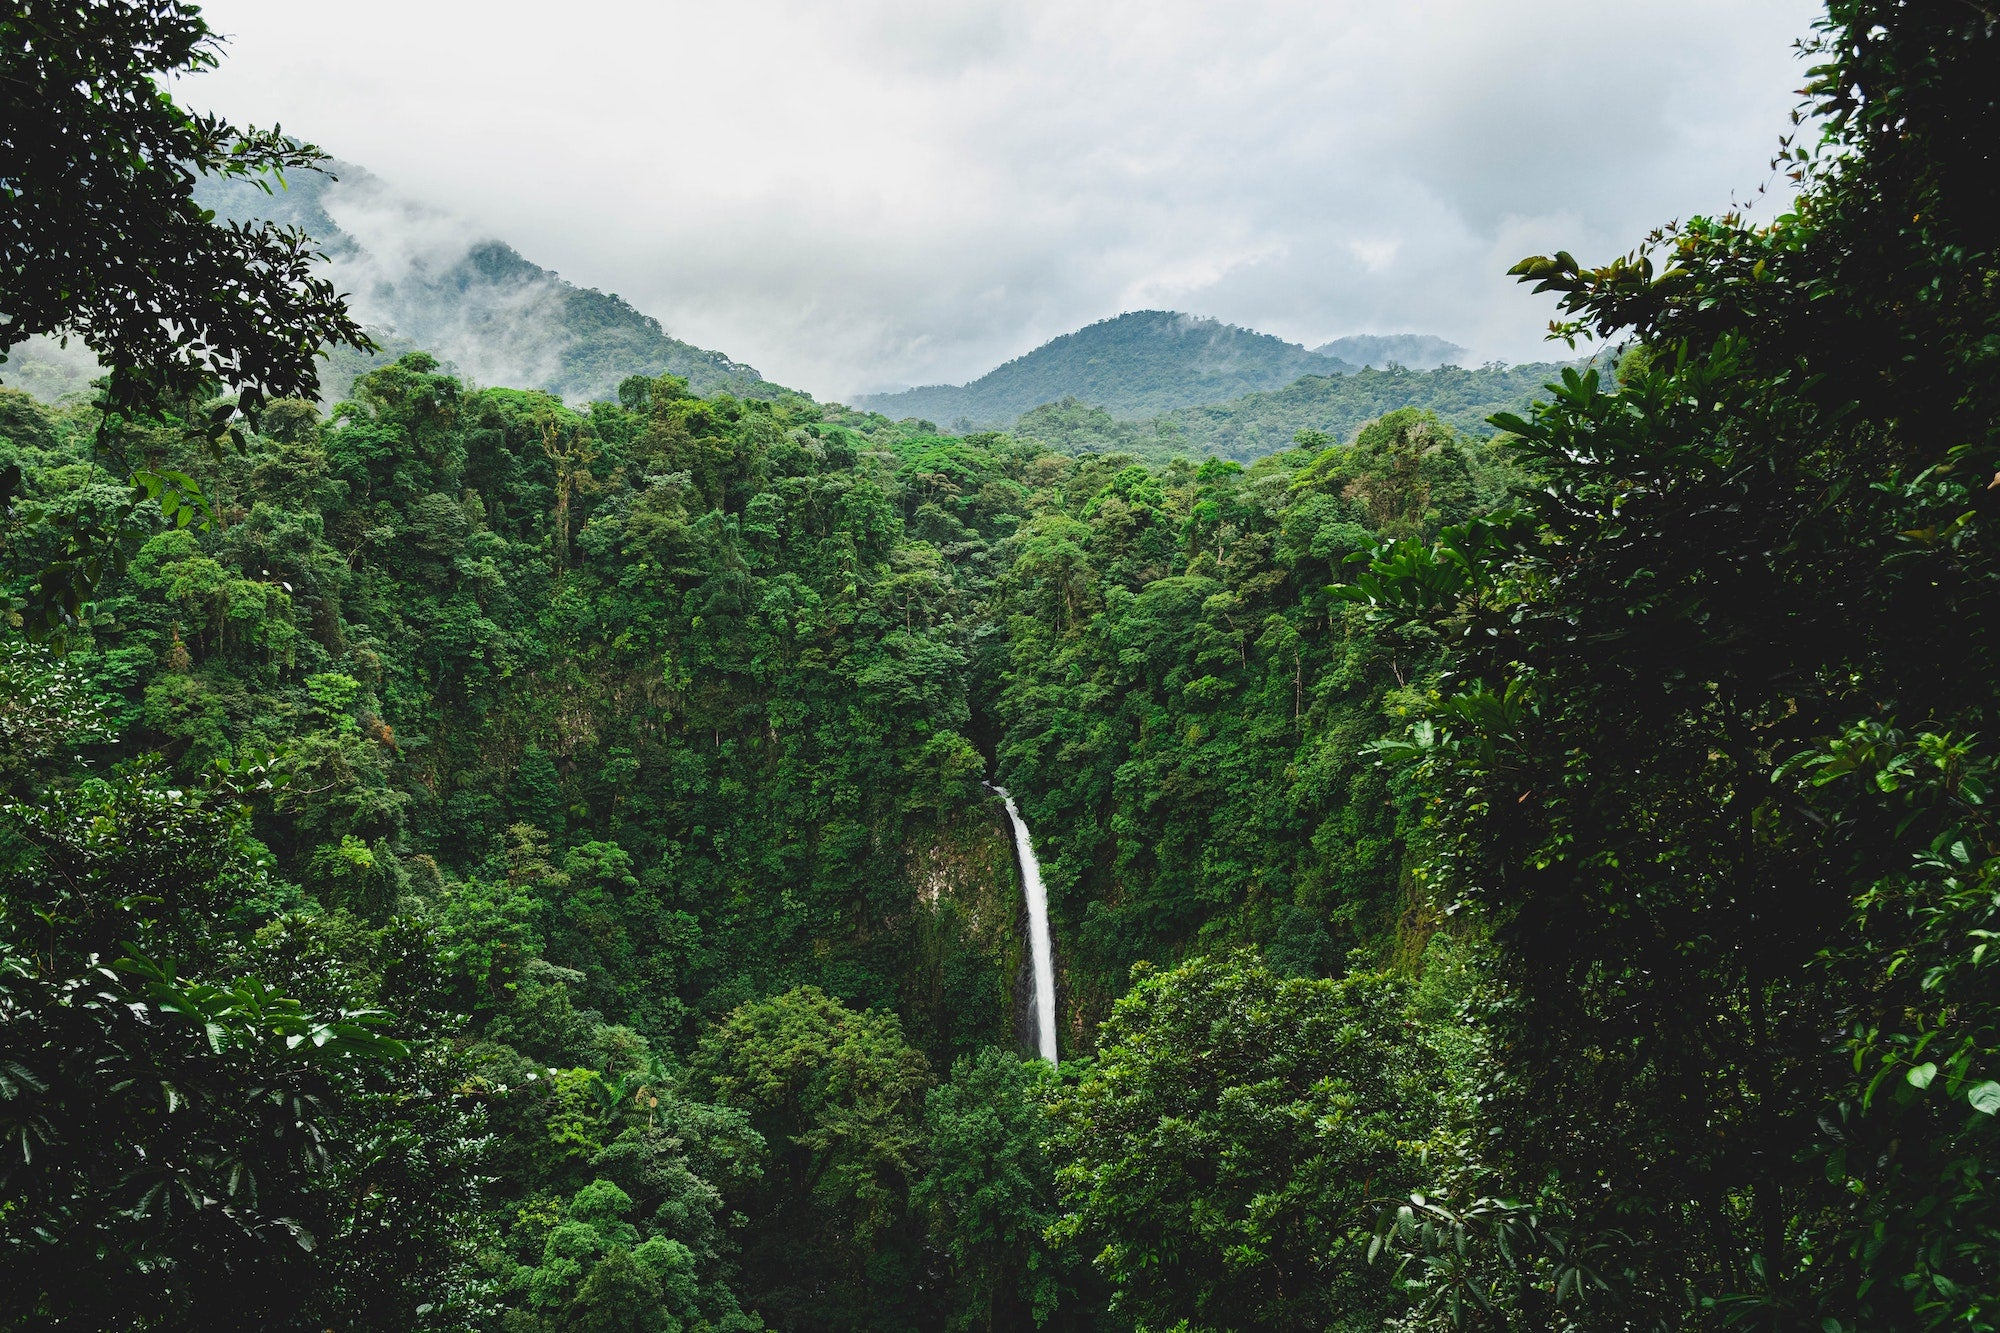 South American Rainforest - Photo by Etienne Delorieux on Unsplash